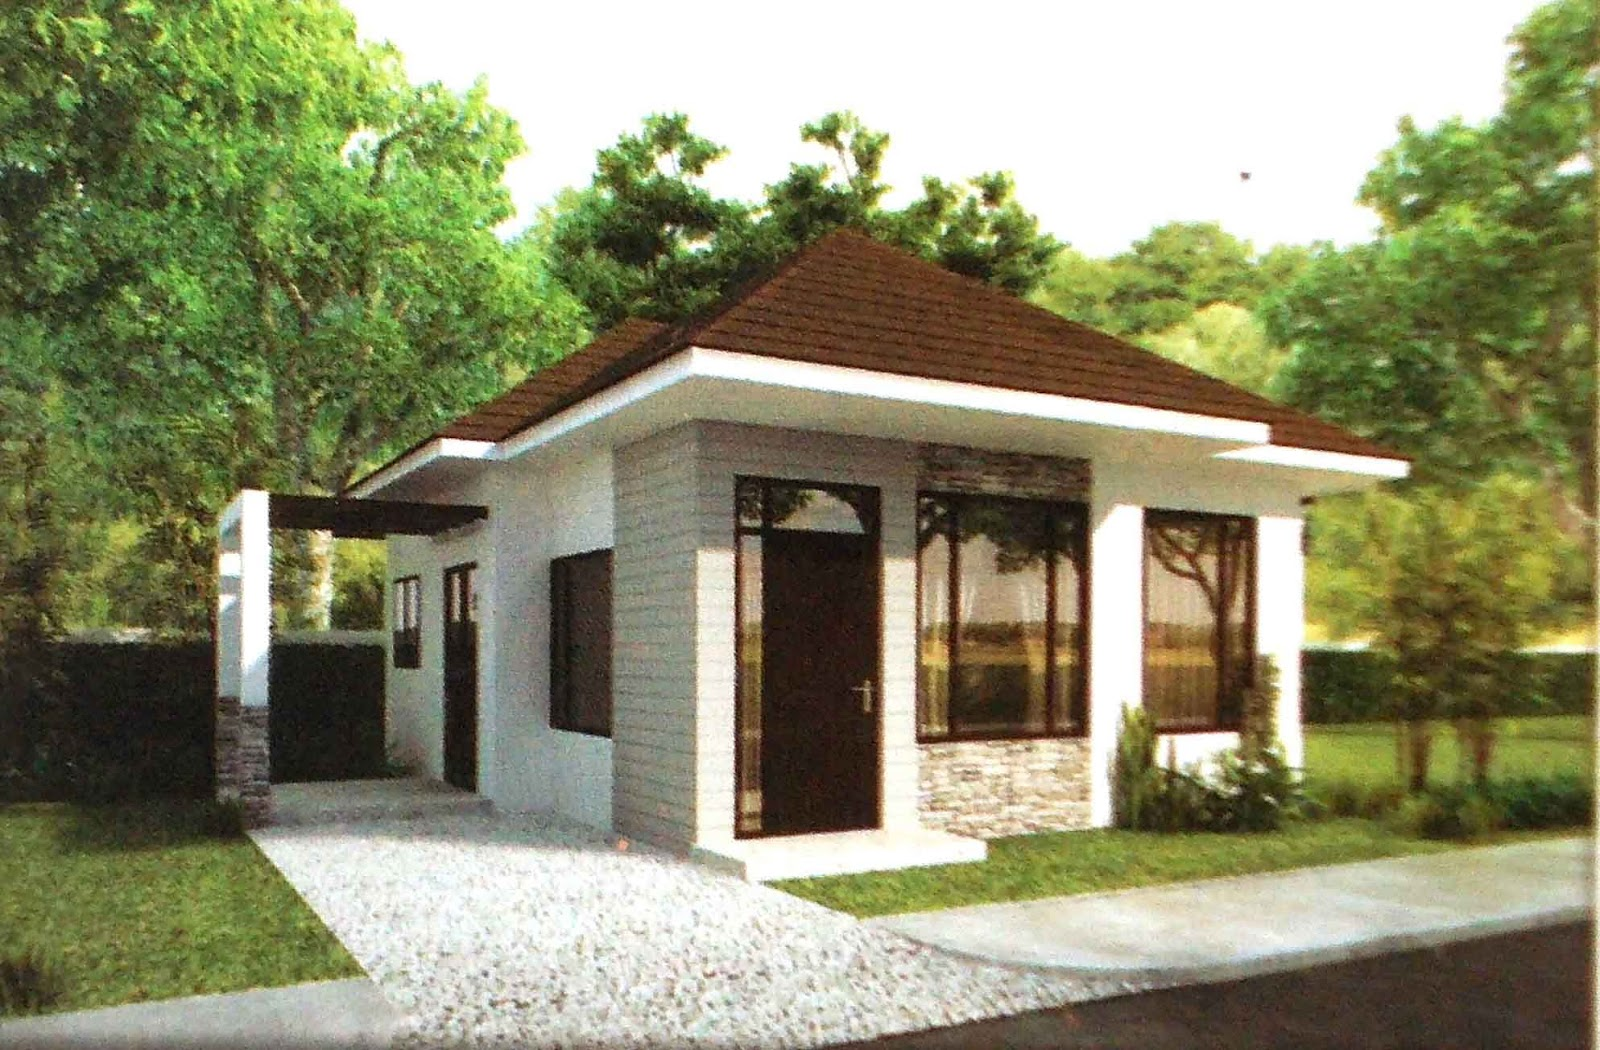 Nicebalay for sale very cheap 2 bedroom bungalow house for 2 bedroom bungalow